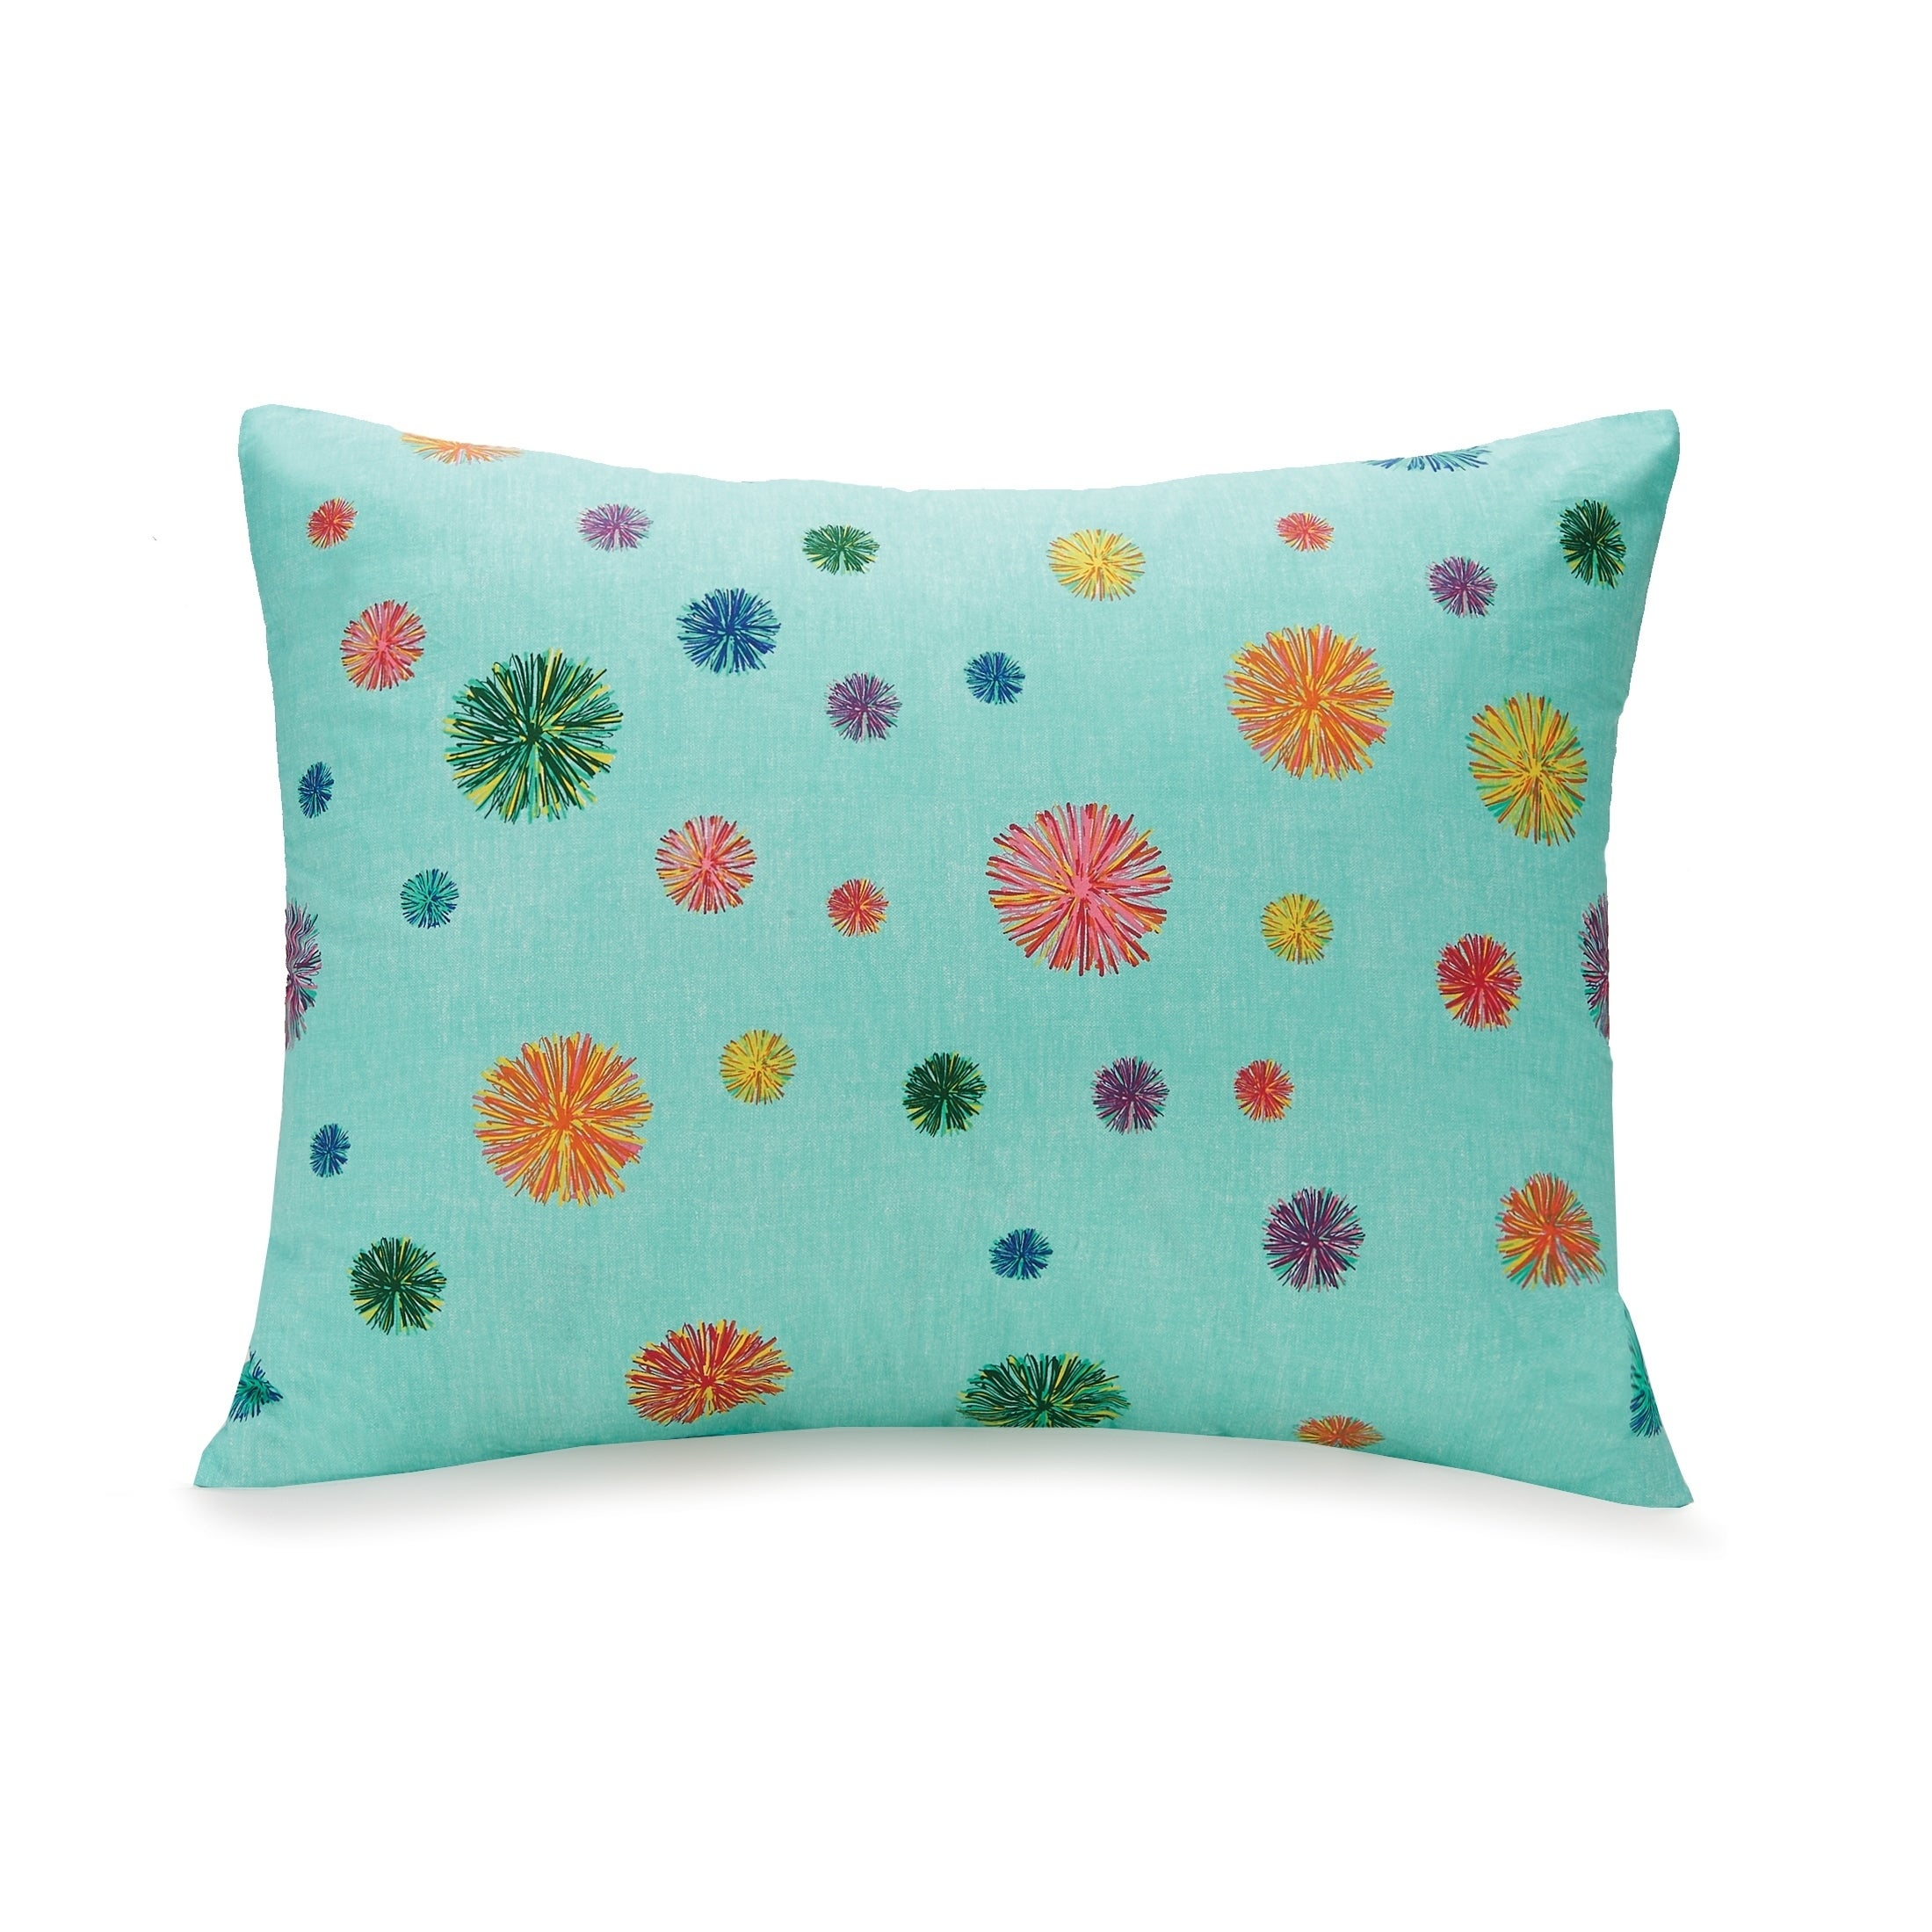 diy copy pom angean easy pillow project dsc